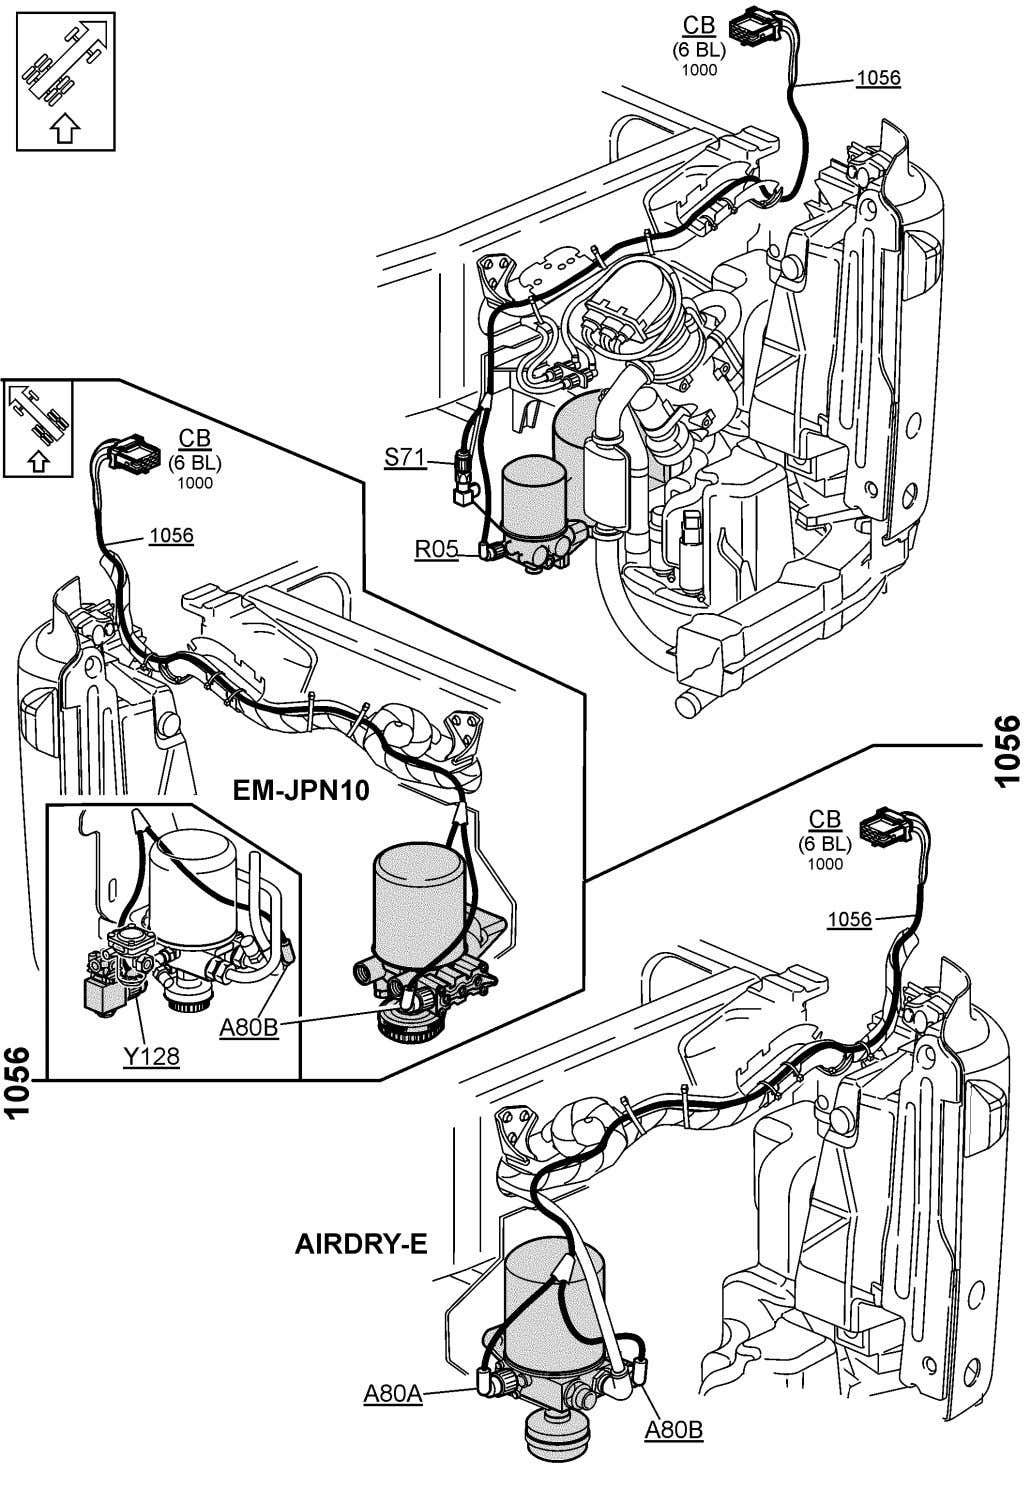 T3057767 Page 170 (298) Wiring diagram